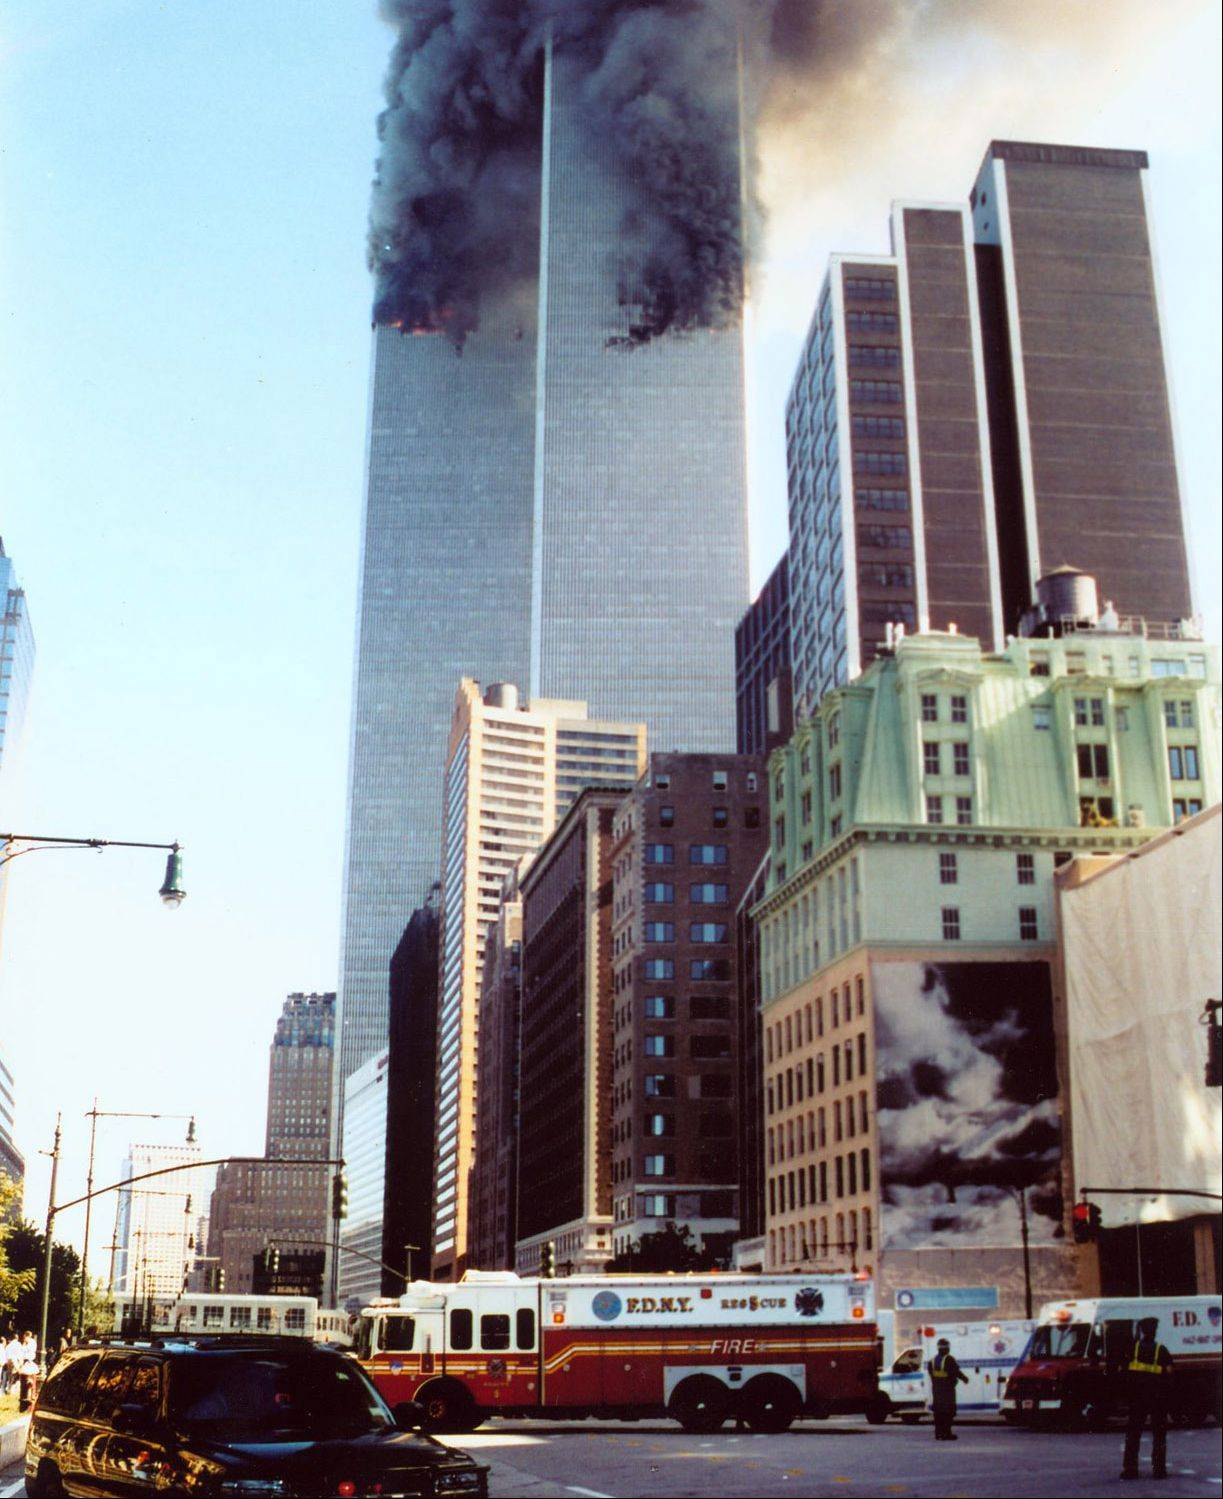 FDNY Rescue 5 comes out of the tunnel from Staten Island as it heads toward the World Trade Center towers in New York City on Sept. 11, 2001.